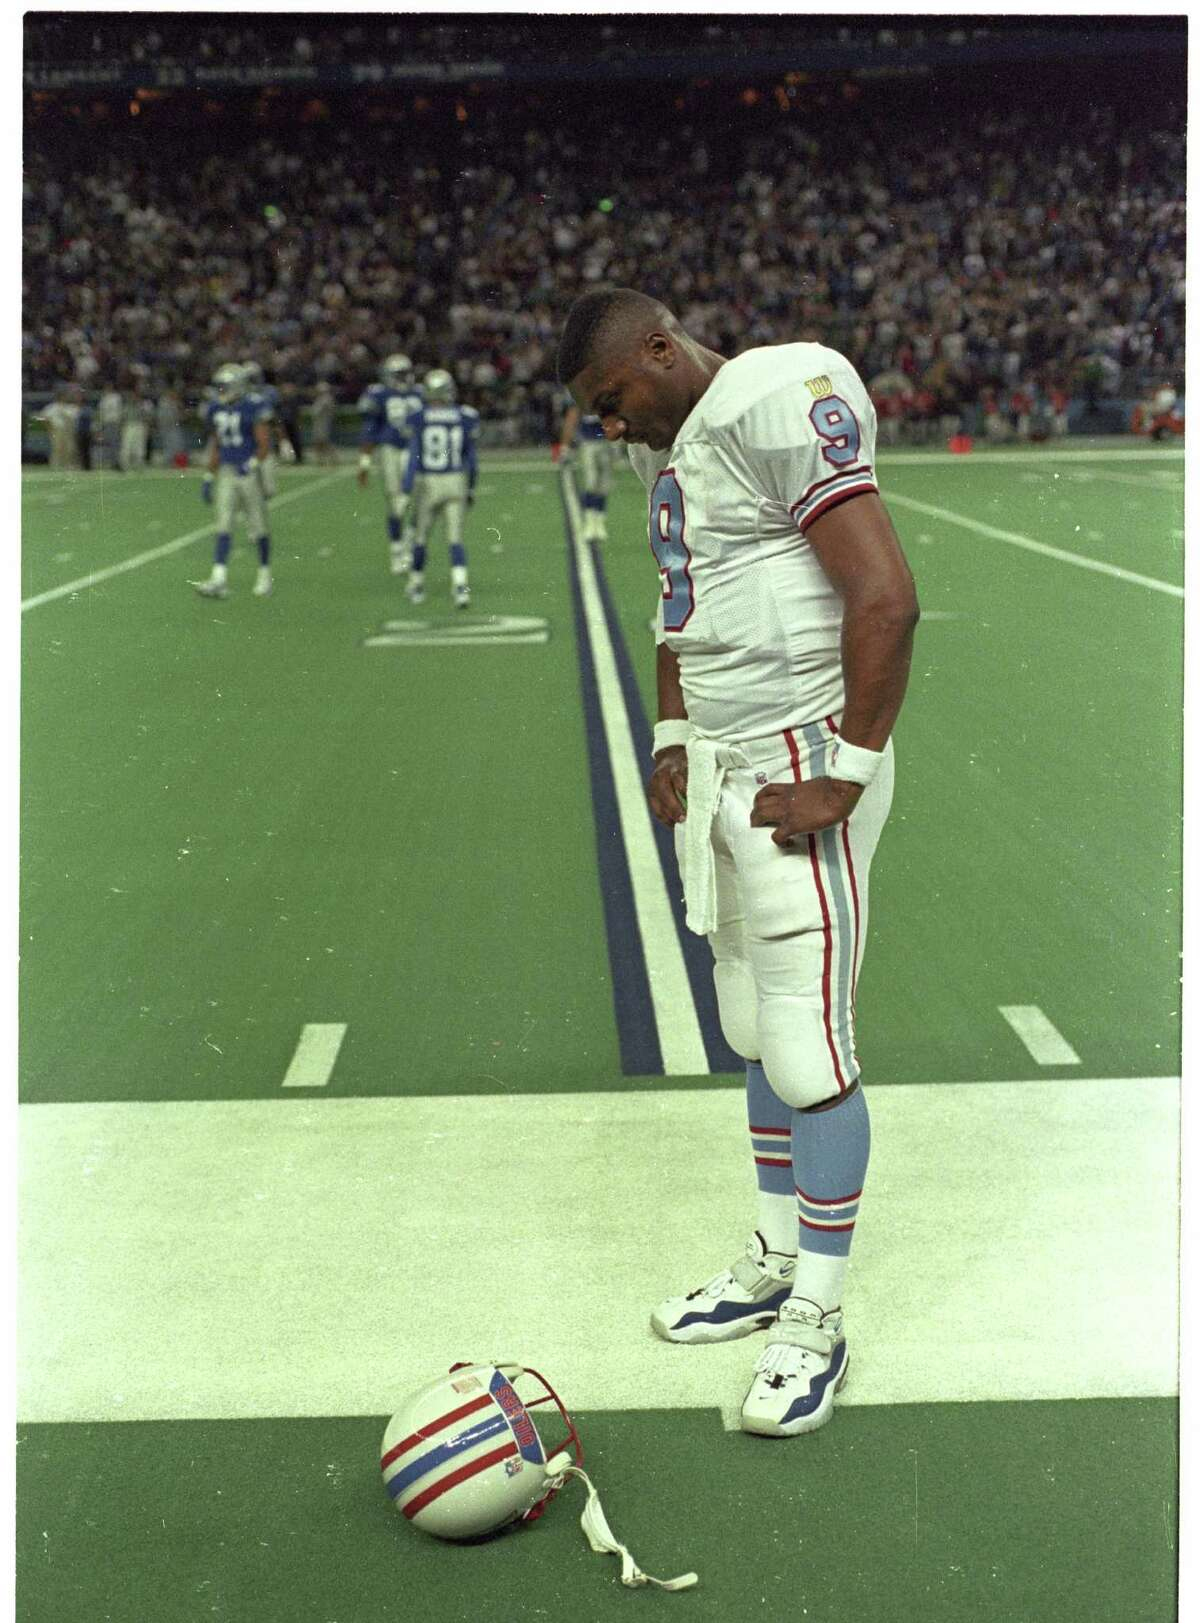 11/03/1996 - Steve McNair is dejected at the end of the game after the Seahawks recovered a blocked field goal and ran it in for a TD to win the game in the Seattle Kingdome, Sunday Nov. 3, 1996. Richard Carson / Houston Chronicle HOUCHRON CAPTION (11/04/1996): Quarterback Steve McNair hangs his head after Oilers lose 23-16 when Seattle blocked a field goal attempt and ran it back for a TD in the last seconds.